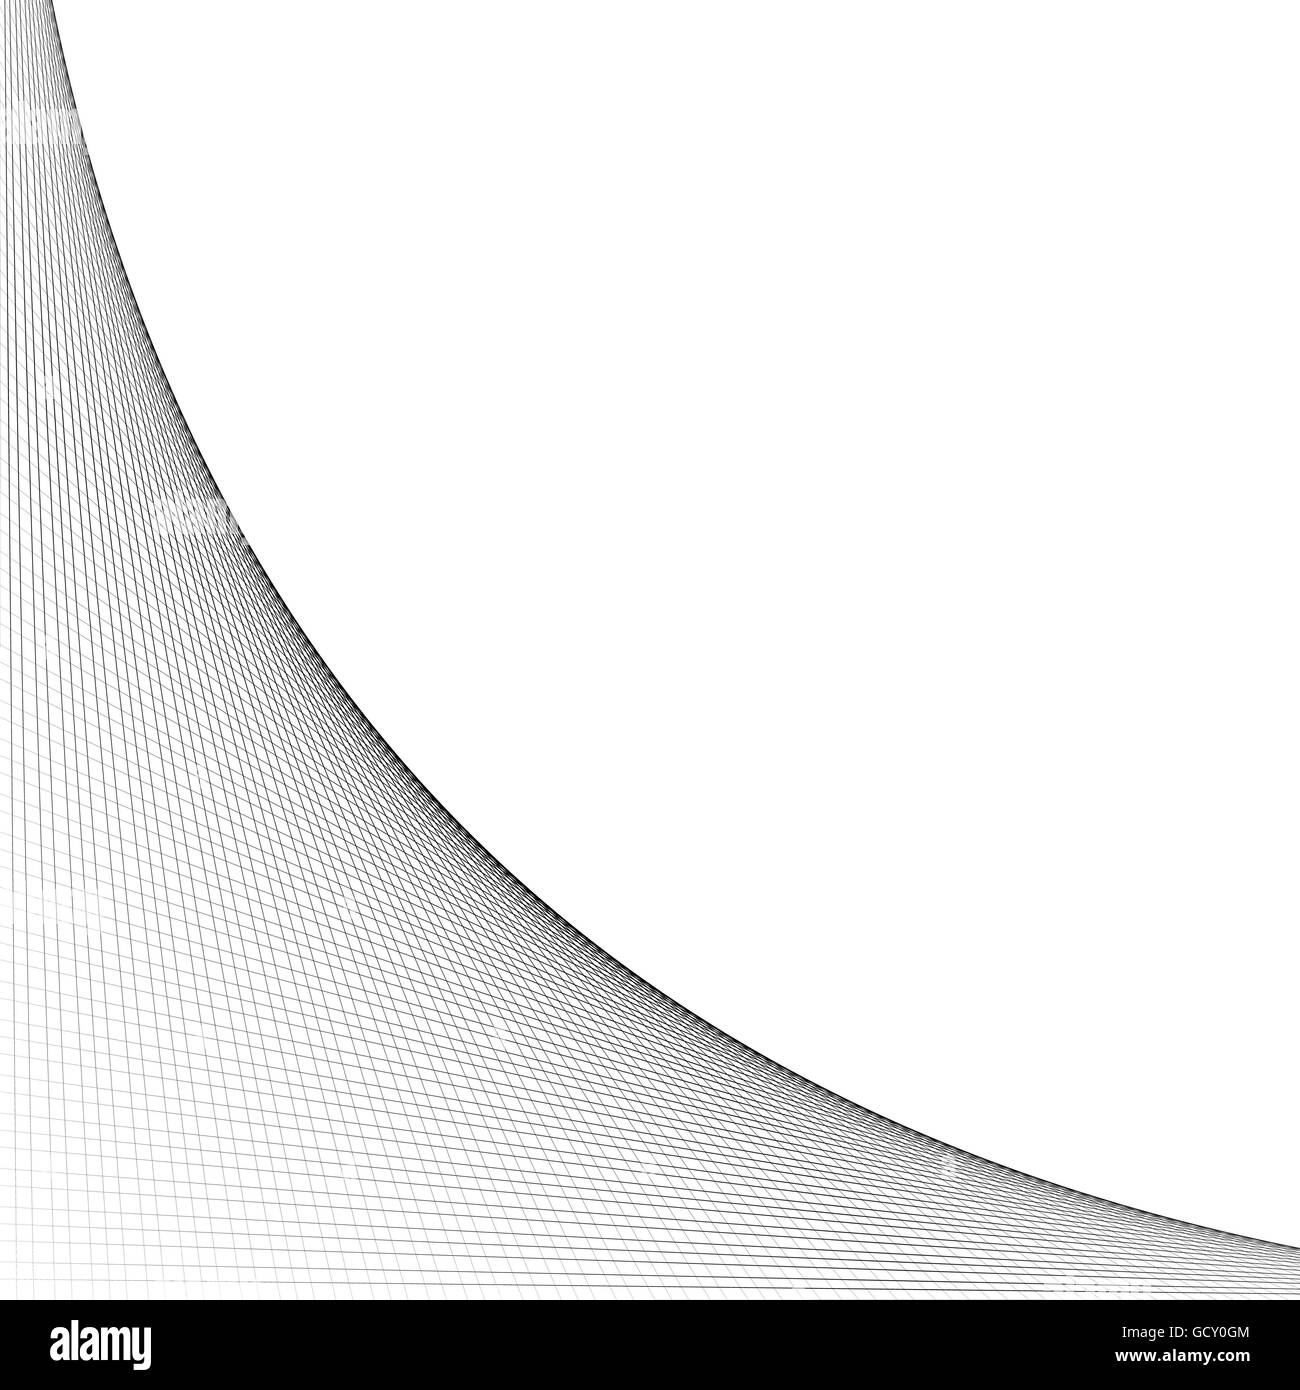 Grid, mesh of intersecting lines with curve, arc spreading from the corner. Reticulate pattern with asymmetry. Abstract - Stock Image